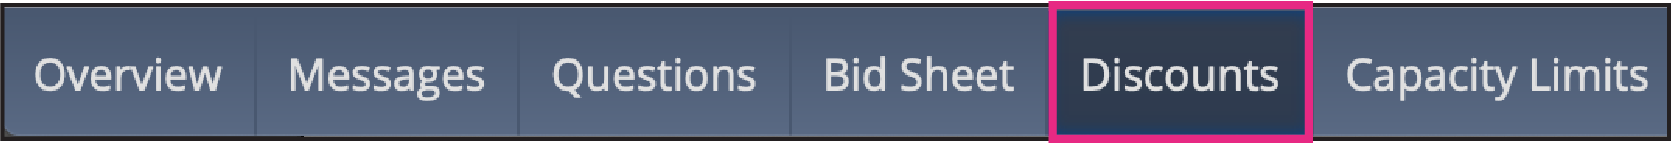 Discounts_Navigation_Bar.png